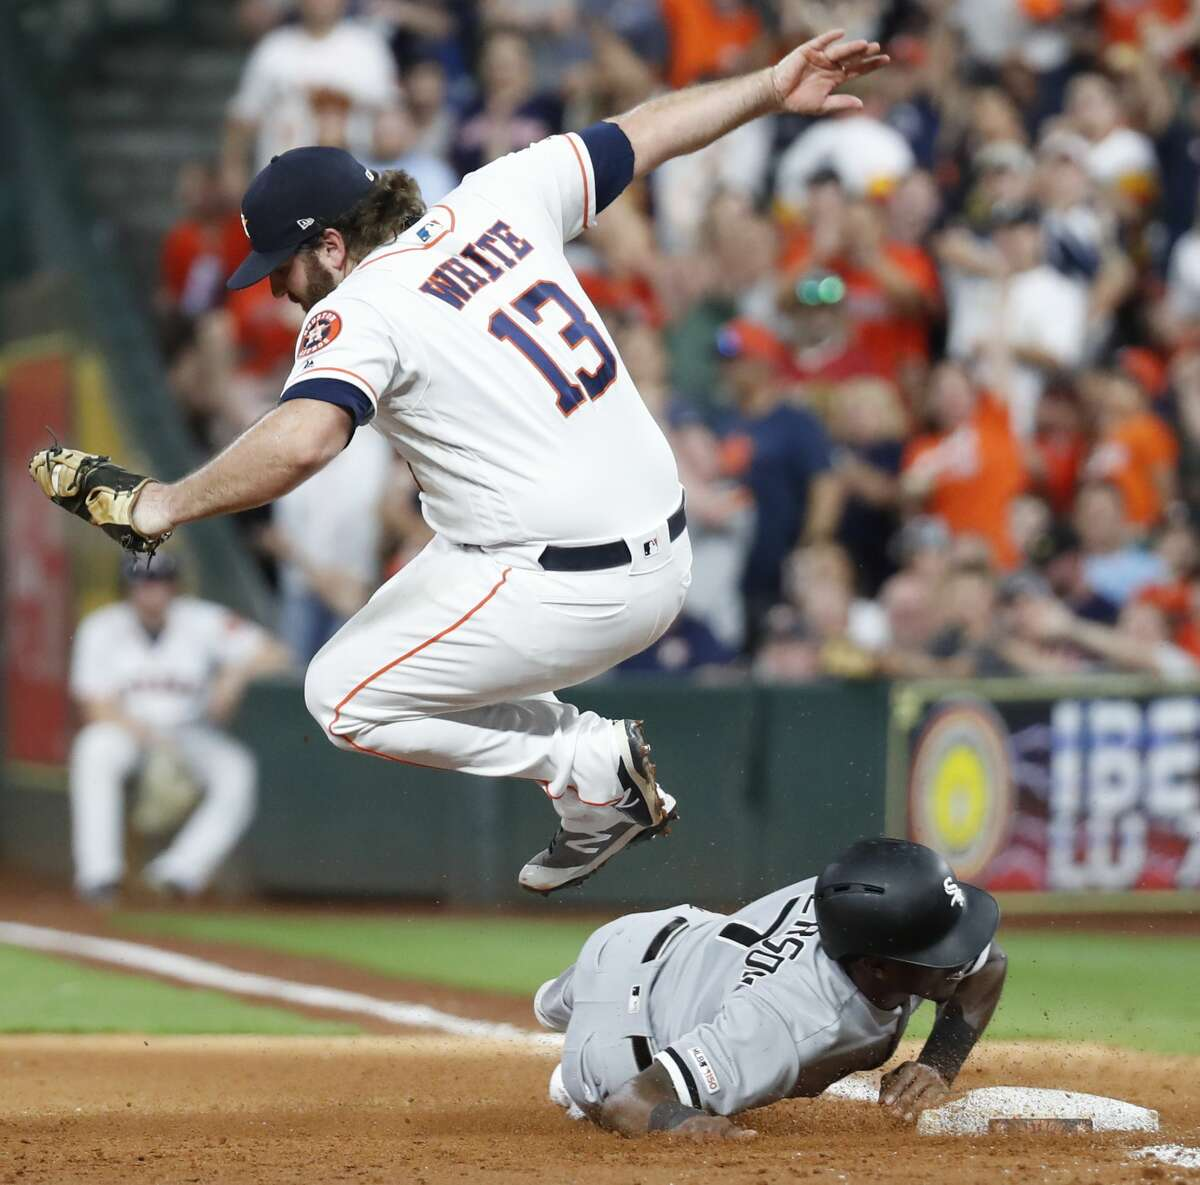 Houston Astros designated hitter Tyler White (13) leaps over Chicago White Sox Tim Anderson (7) after completing a double play on a throw from left field from Jake Marisnick during the fifth inning of a major league baseball game at Minute Maid Park on Wednesday, May 22, 2019, in Houston.